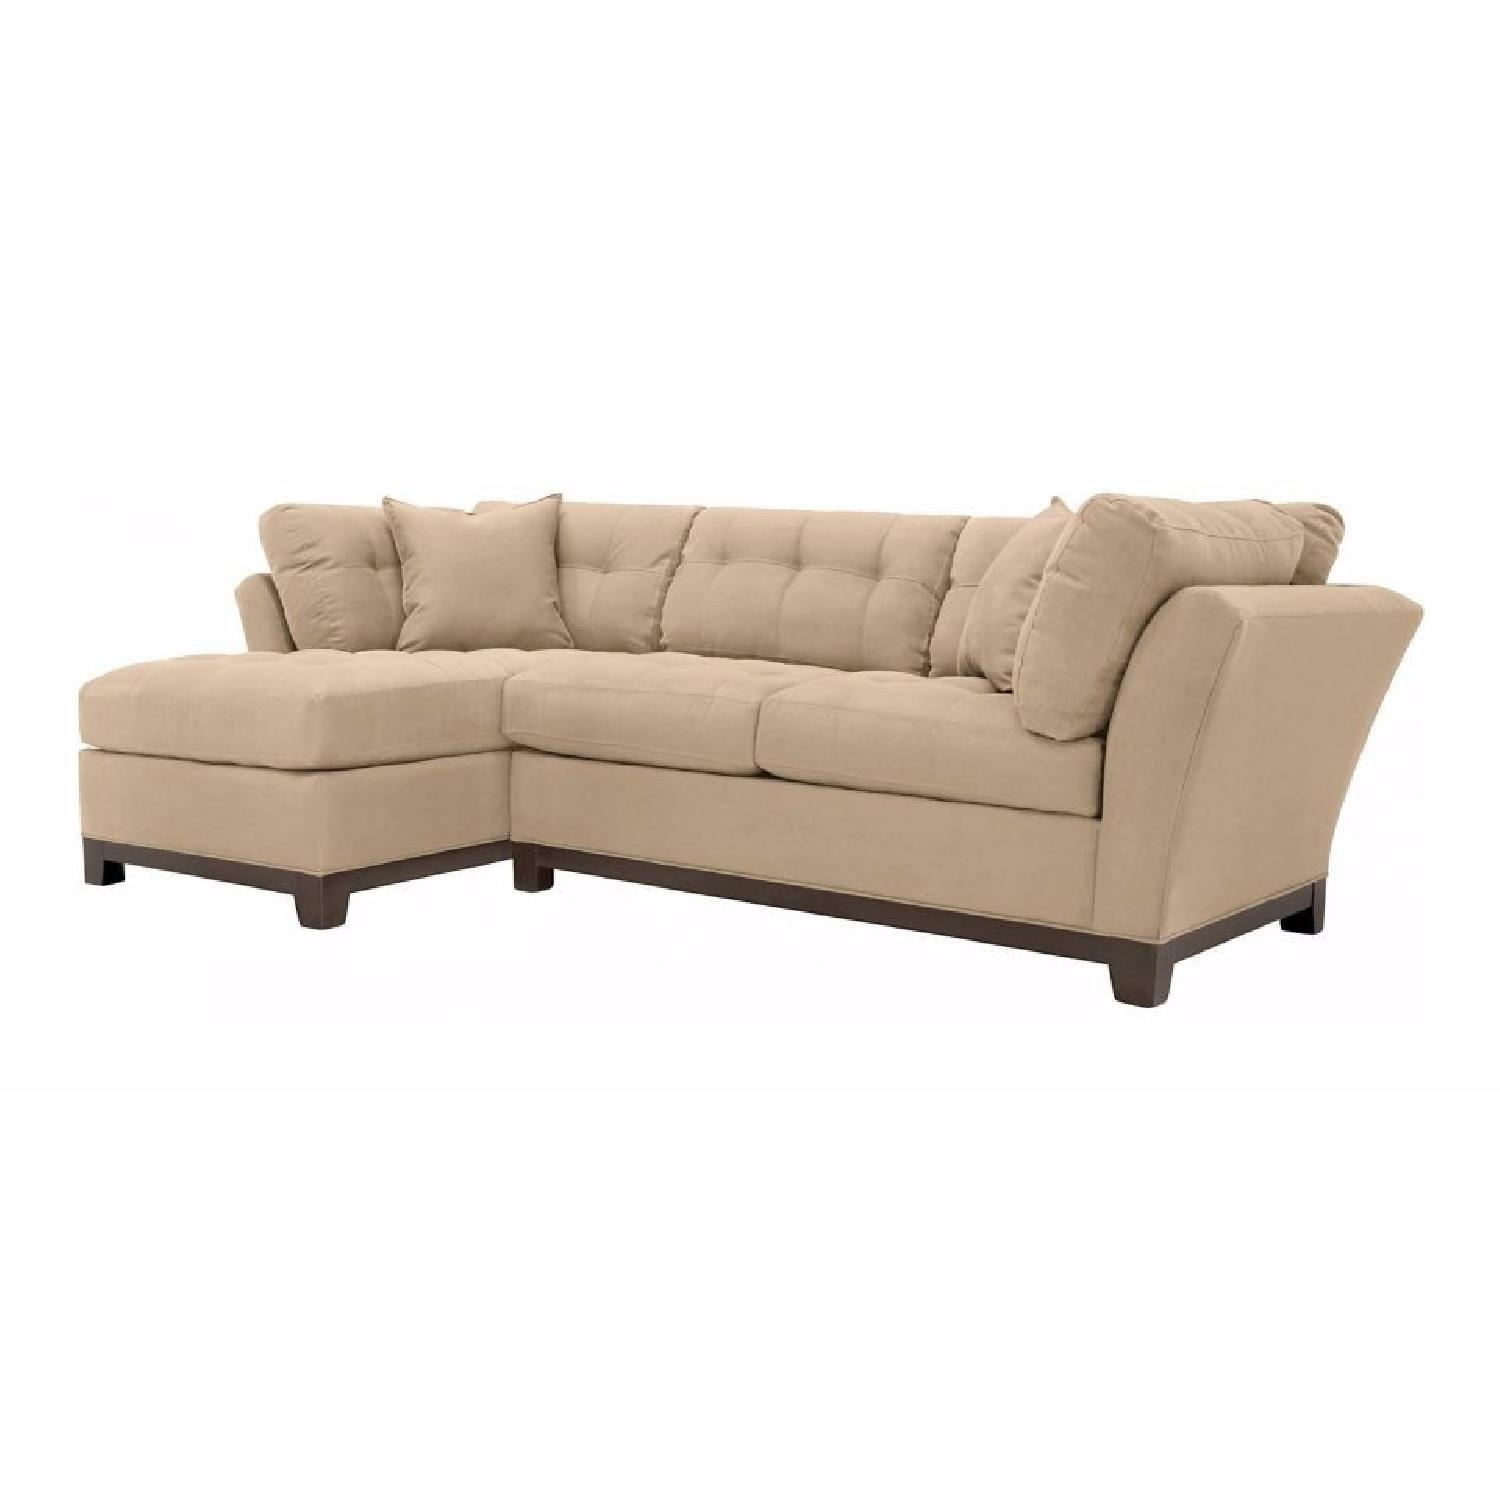 20+ Choices Of Room And Board Sectional Sofa